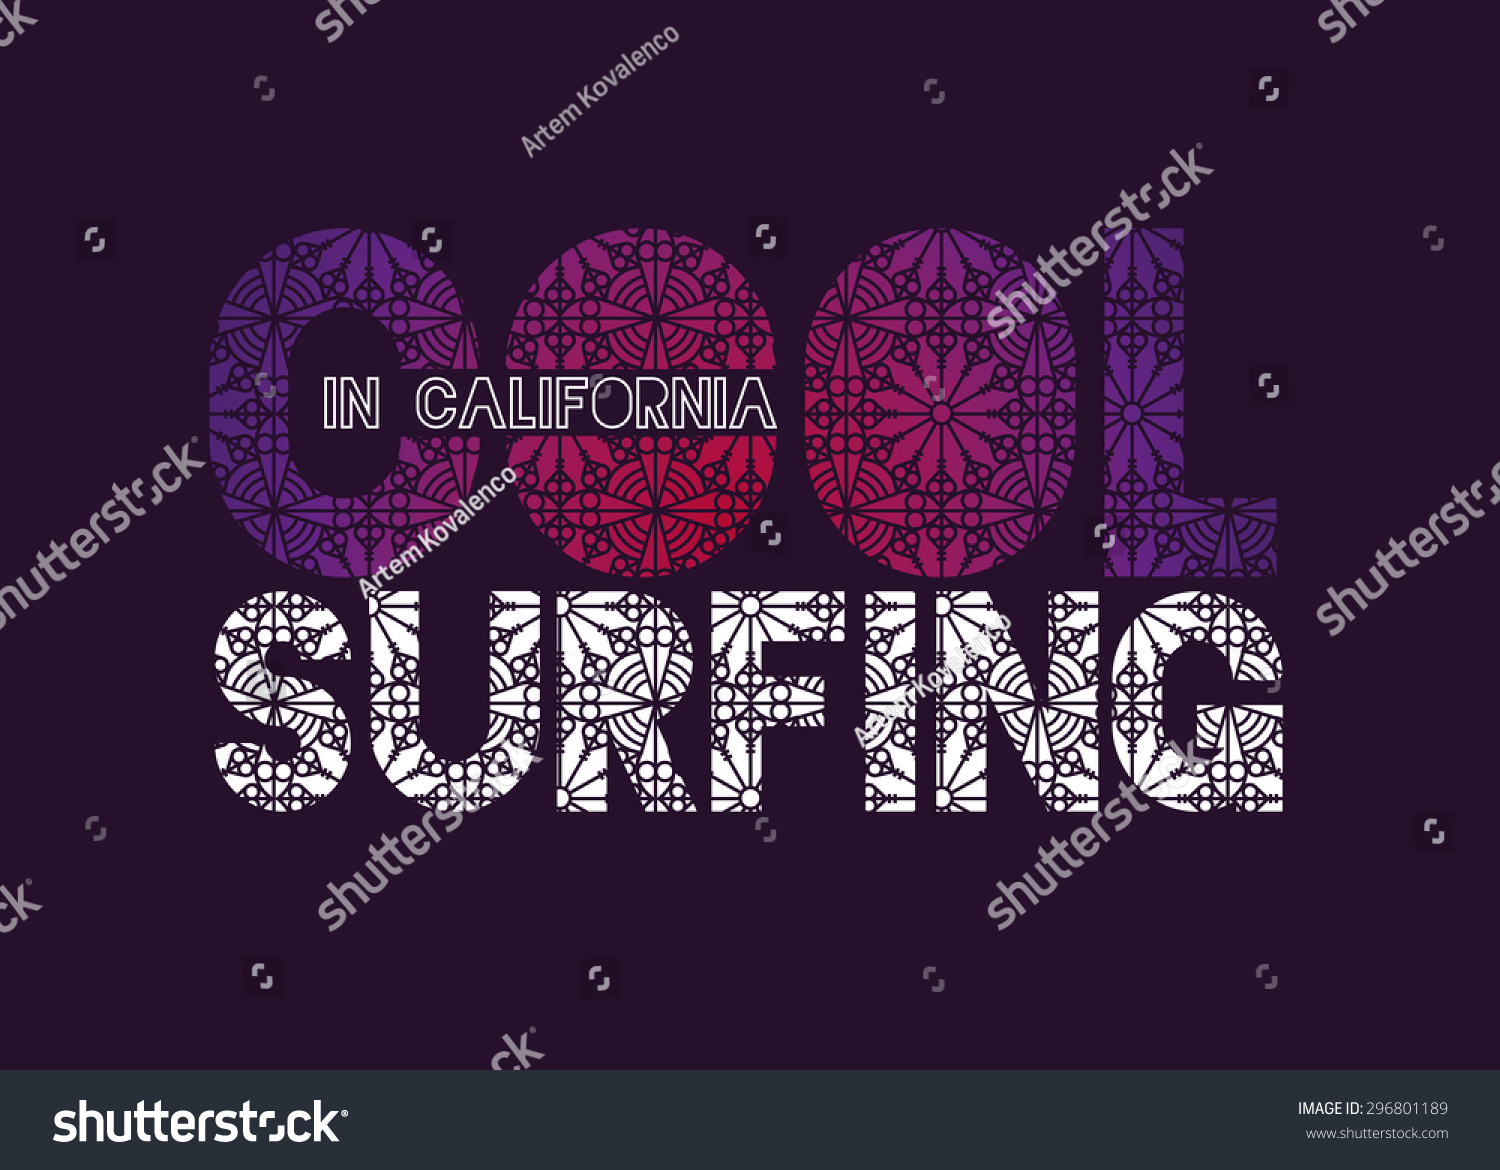 vector illustration of a cool surfing in California California surfing design for graphics for t-shirt vintage design imposed geometric dynamic pattern background